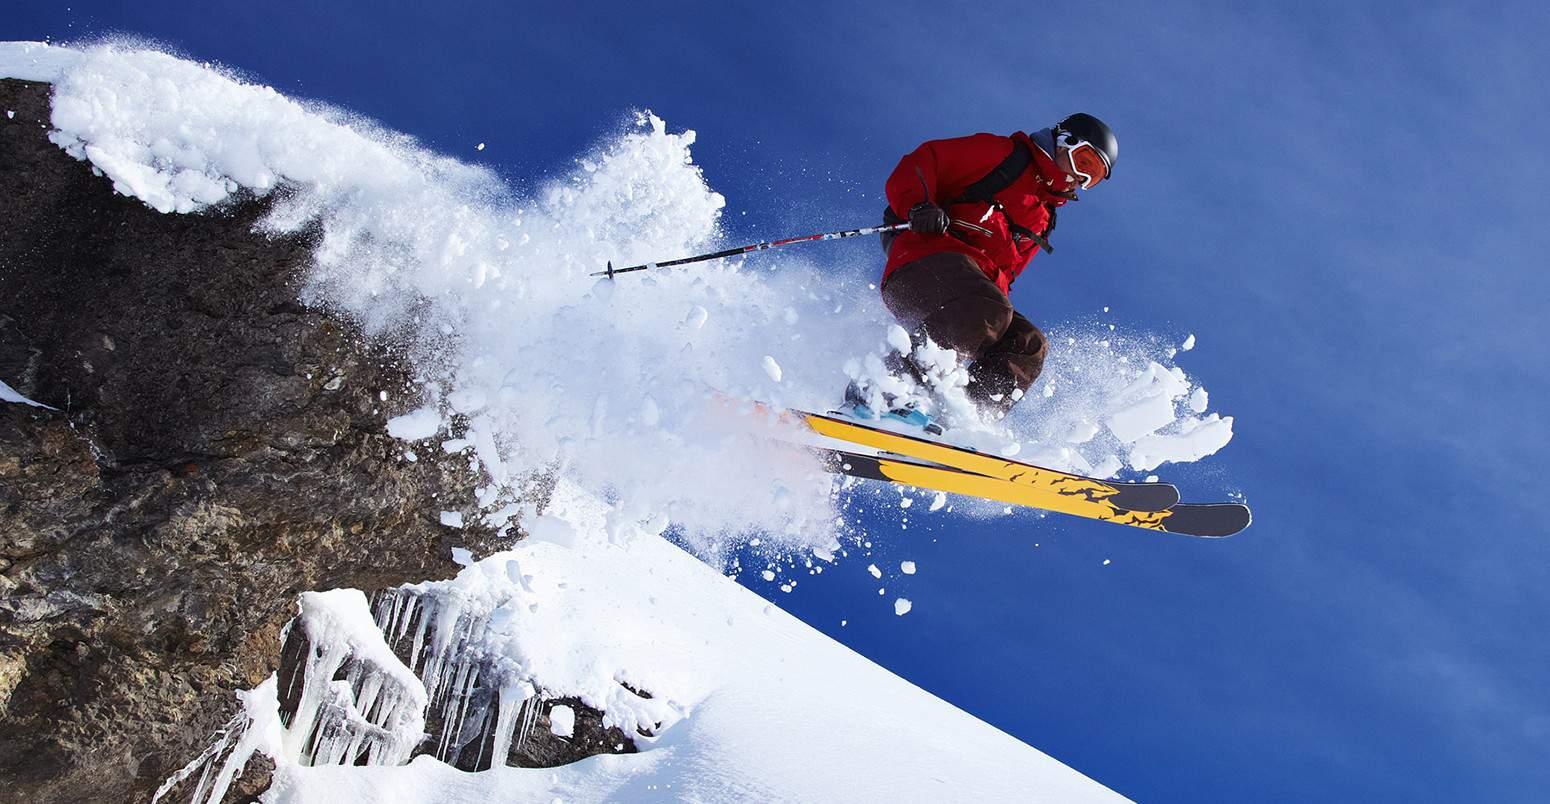 skier going off a cliff with powder